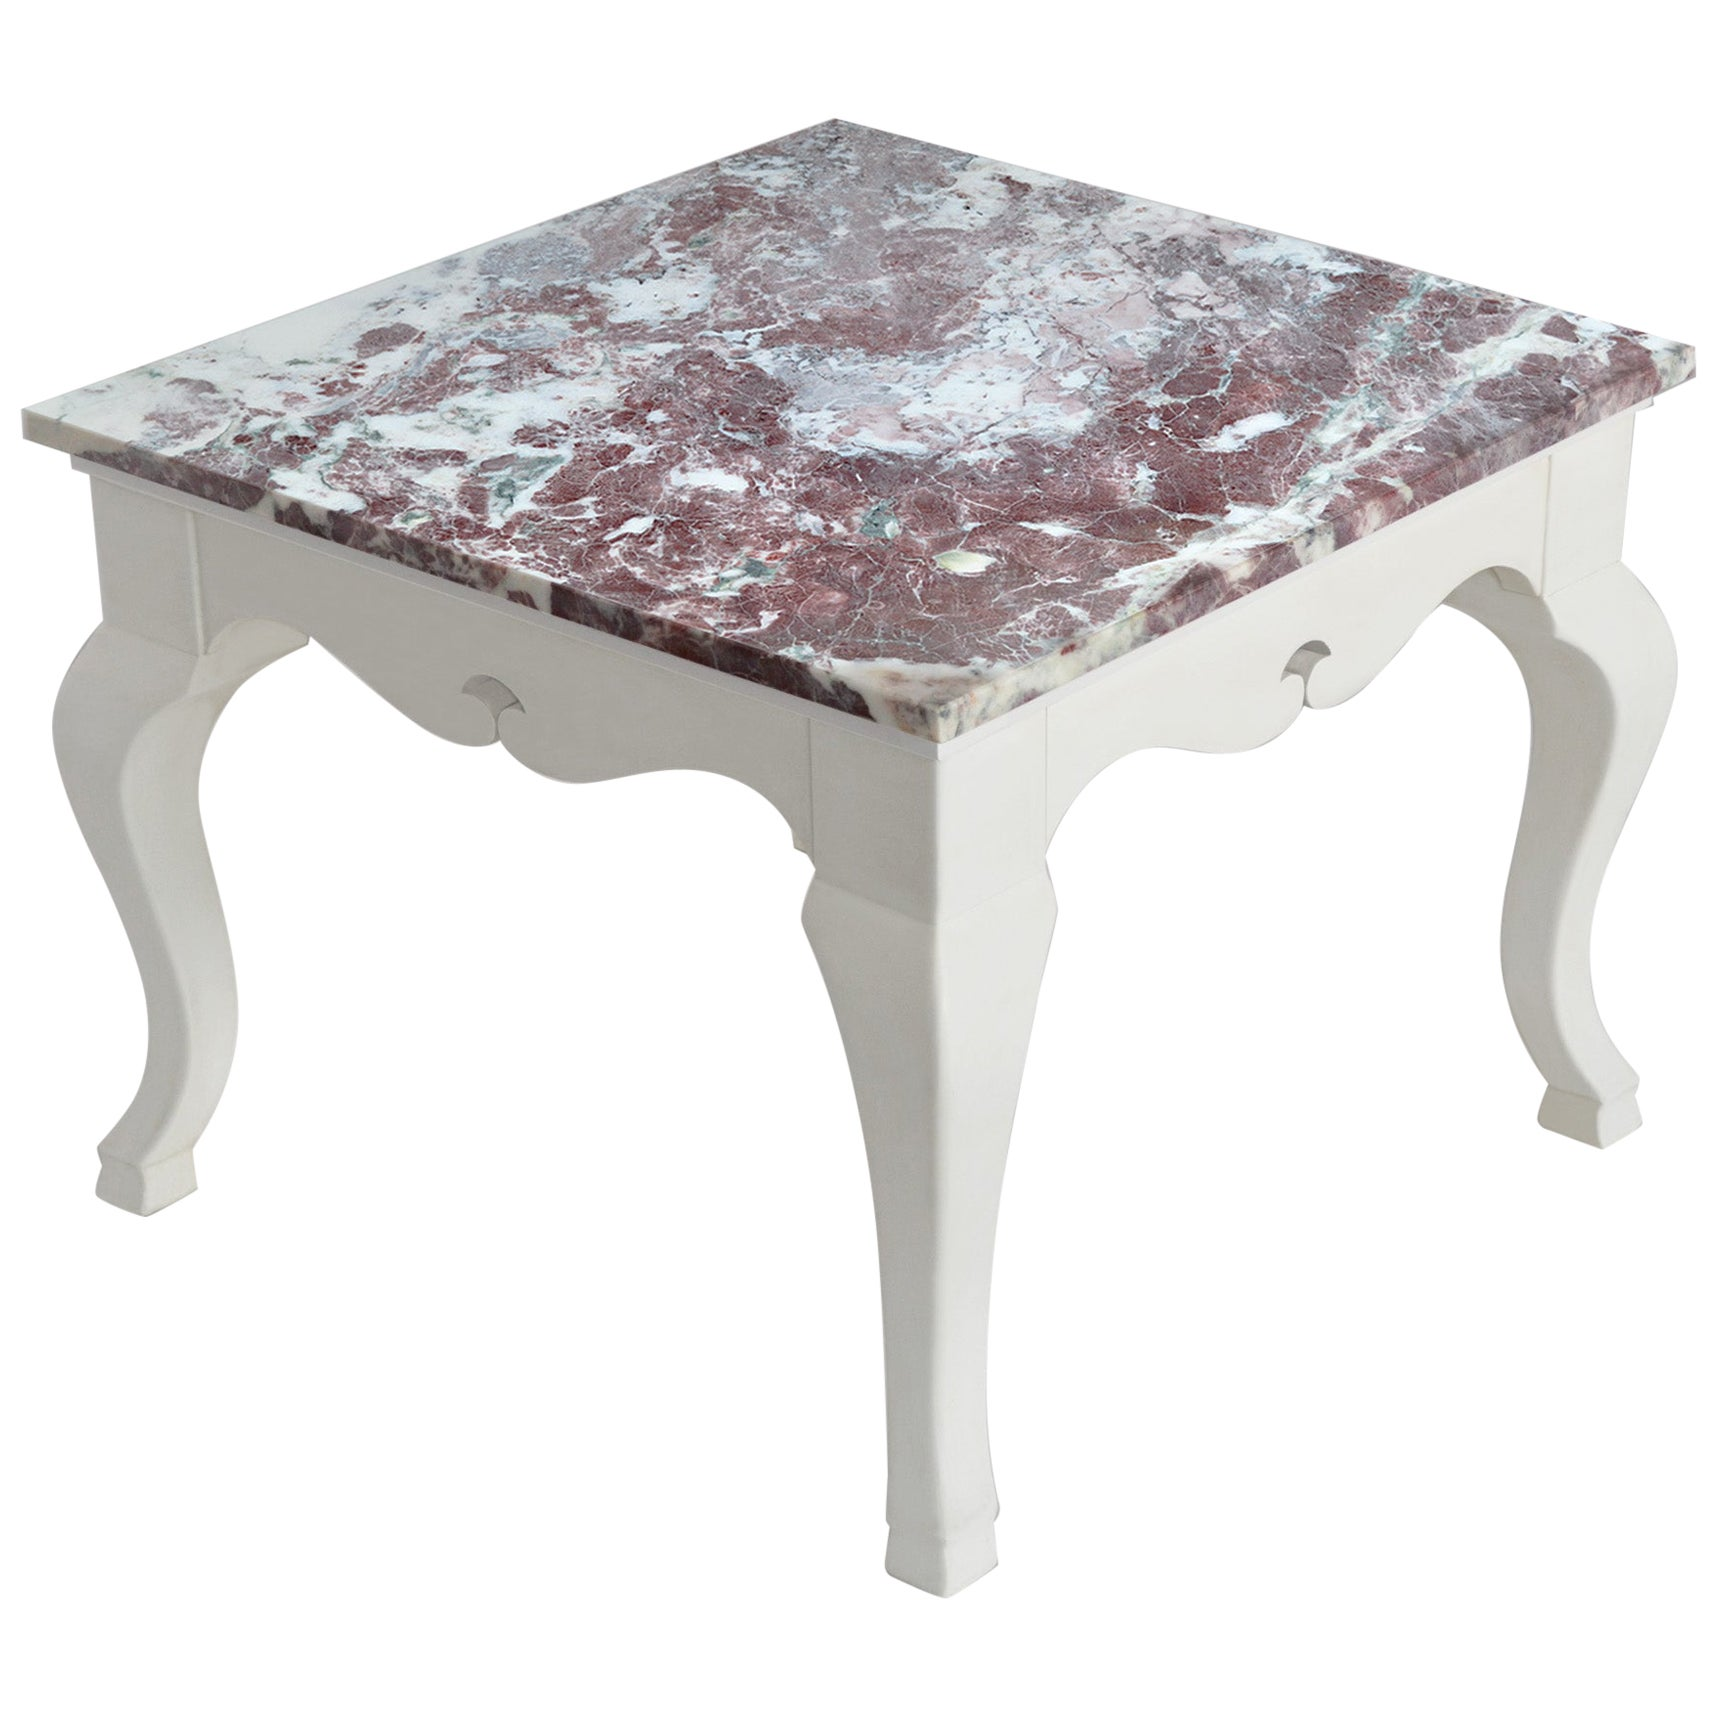 Red marble Square Side Table top White Lacquered Wooden Base handmade in Italy